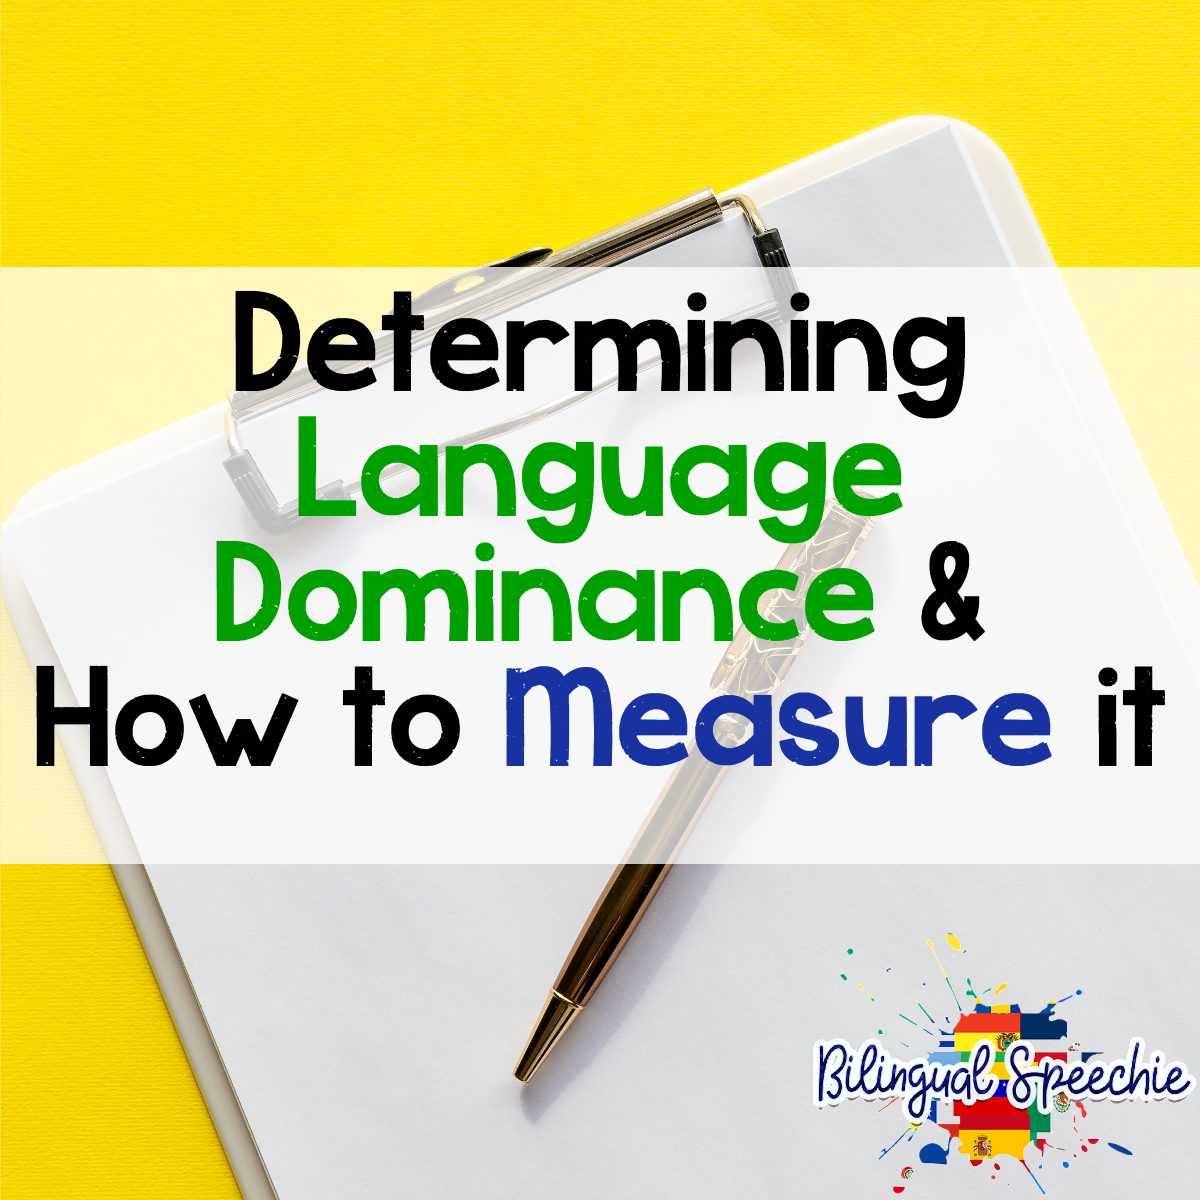 Determining Language Dominance: Why It's Important & How to Measure It